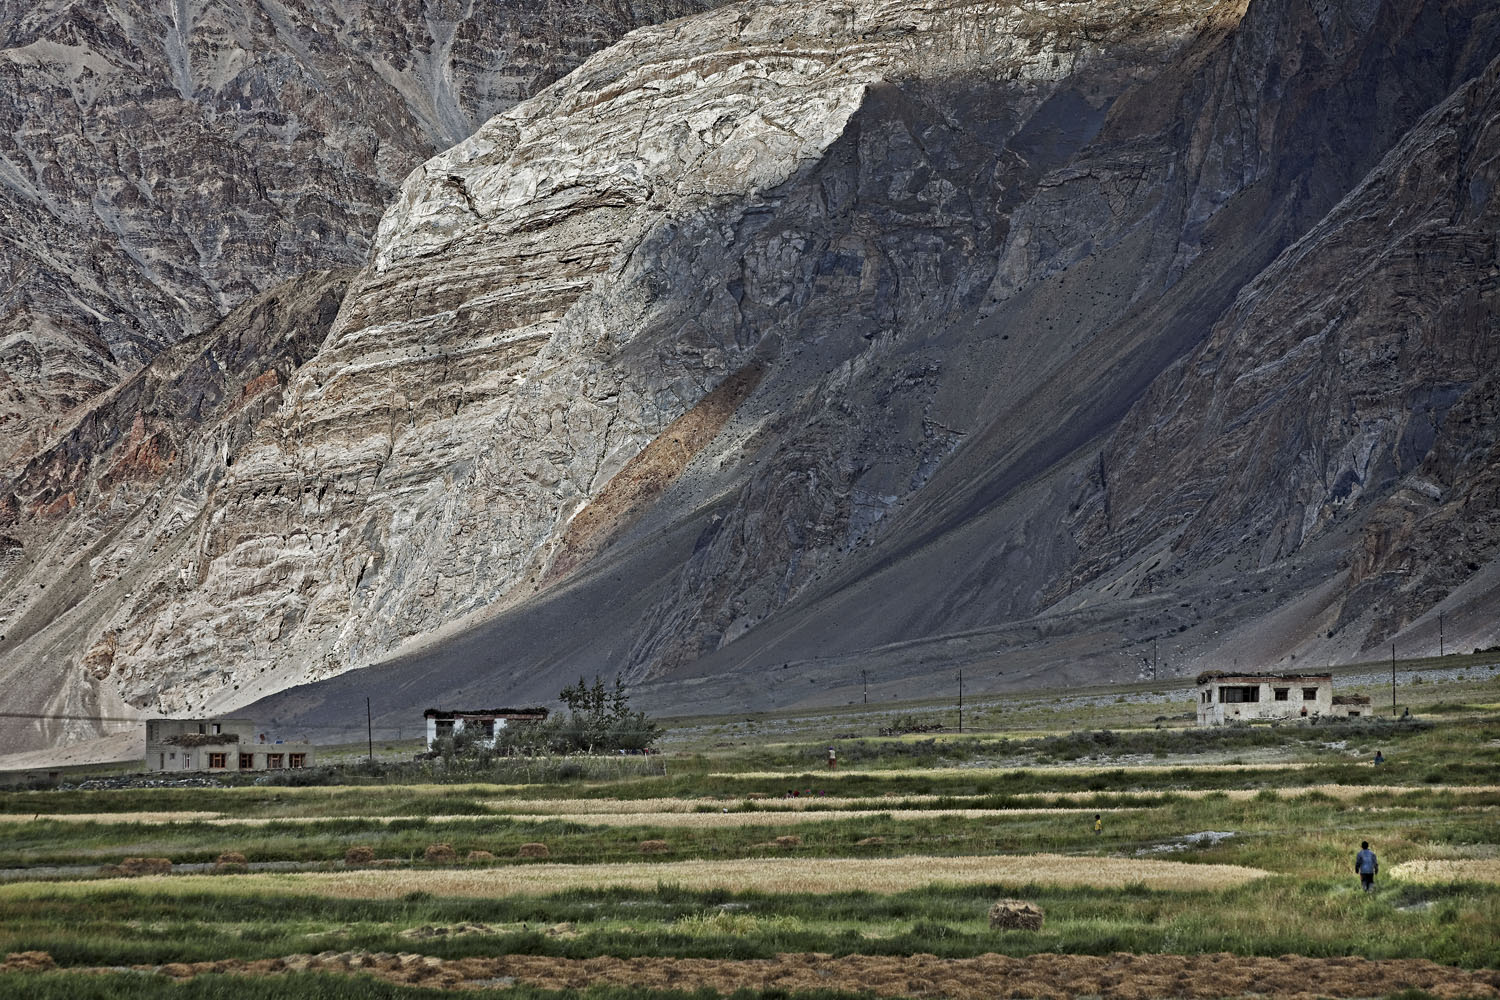 Barley fields, Stongde, Zanskar, India